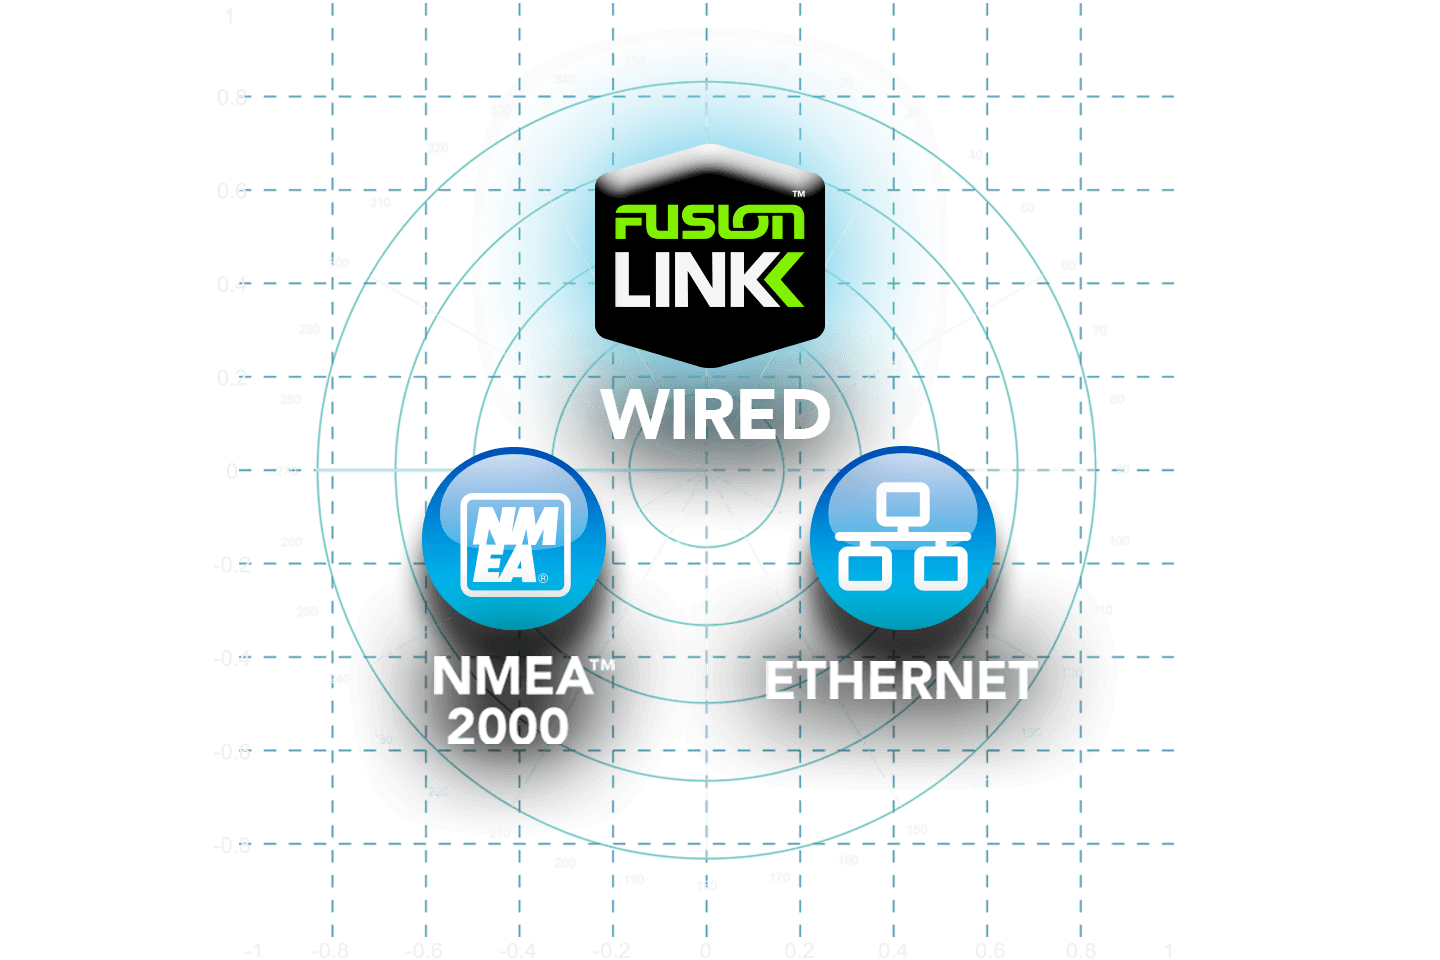 FUSION-Link Wired Control